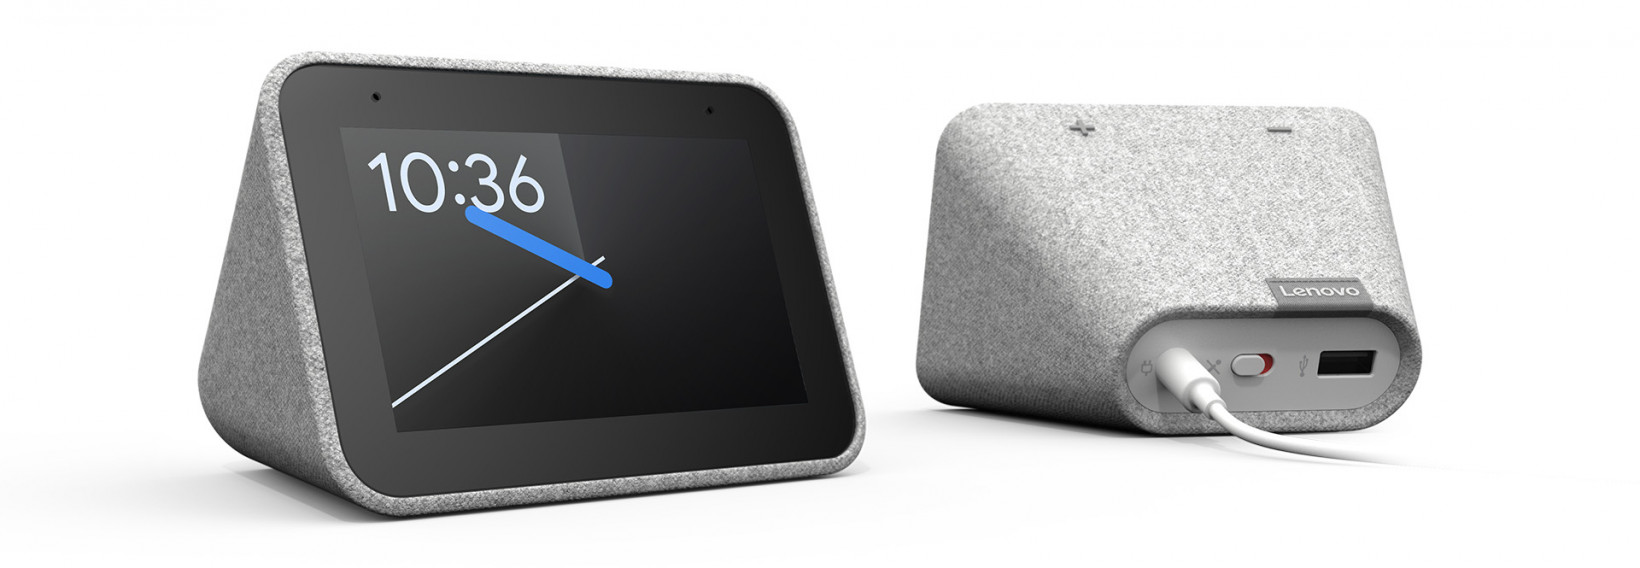 The Smart Clock features a 6W speaker, a 4-inch display, a fabric cover, and a USB port to charge other devices